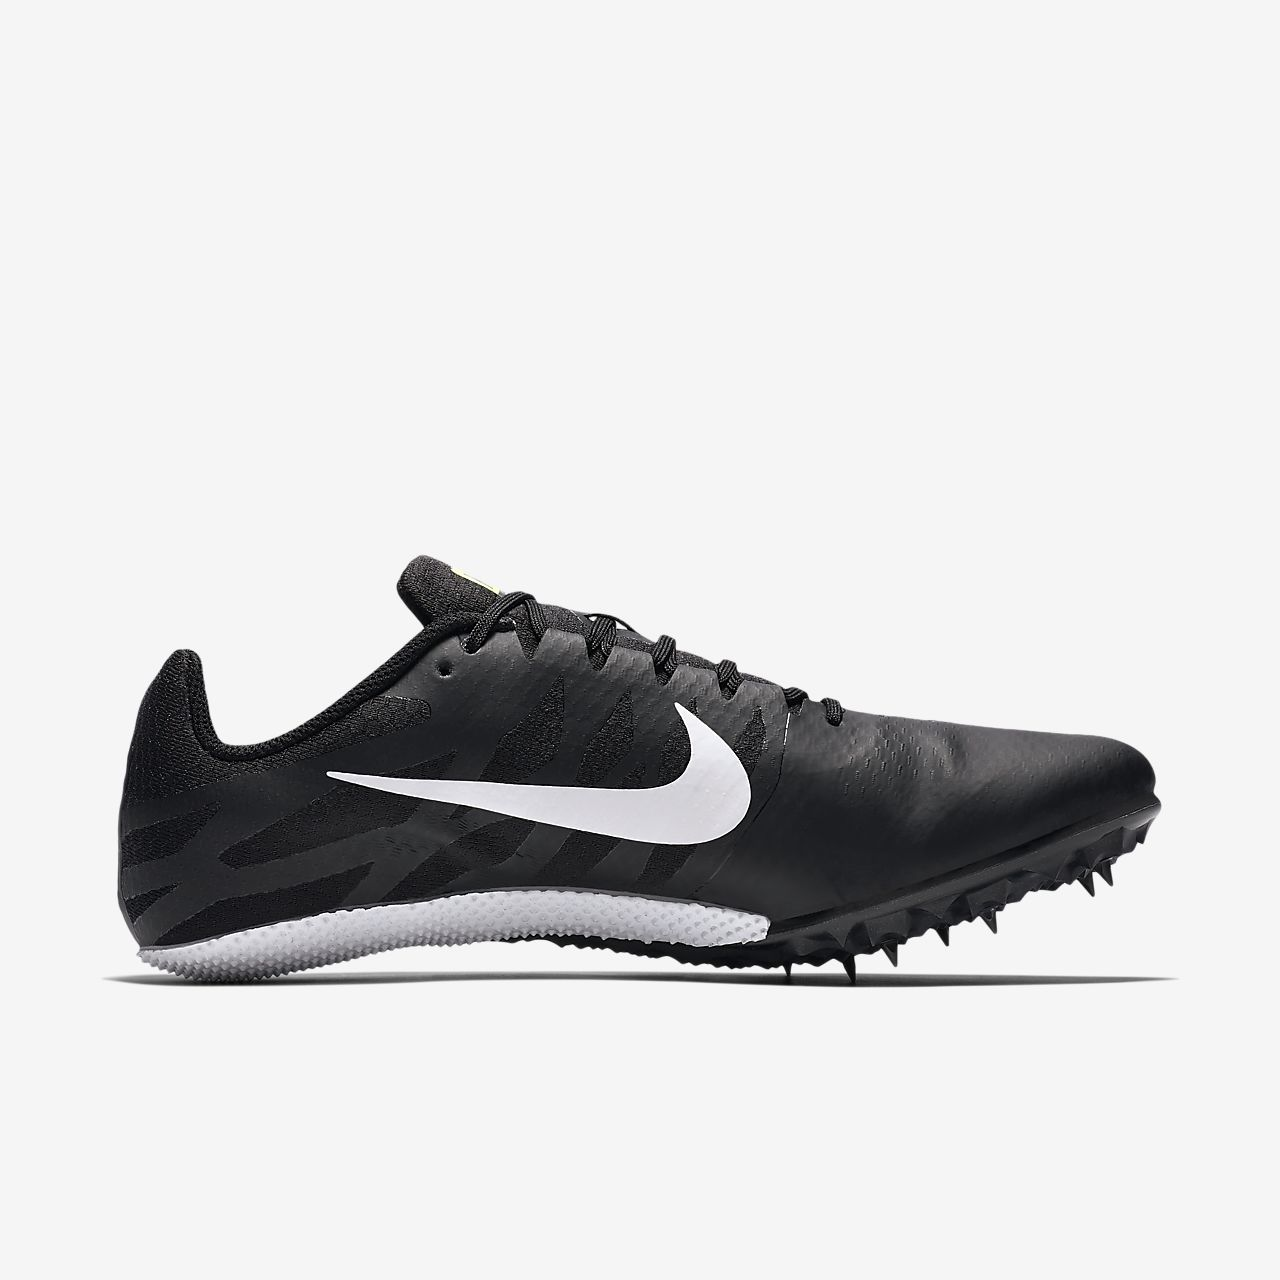 Low Resolution Nike Zoom Rival S 9 Unisex Track Spike Nike Zoom Rival S 9  Unisex Track Spike